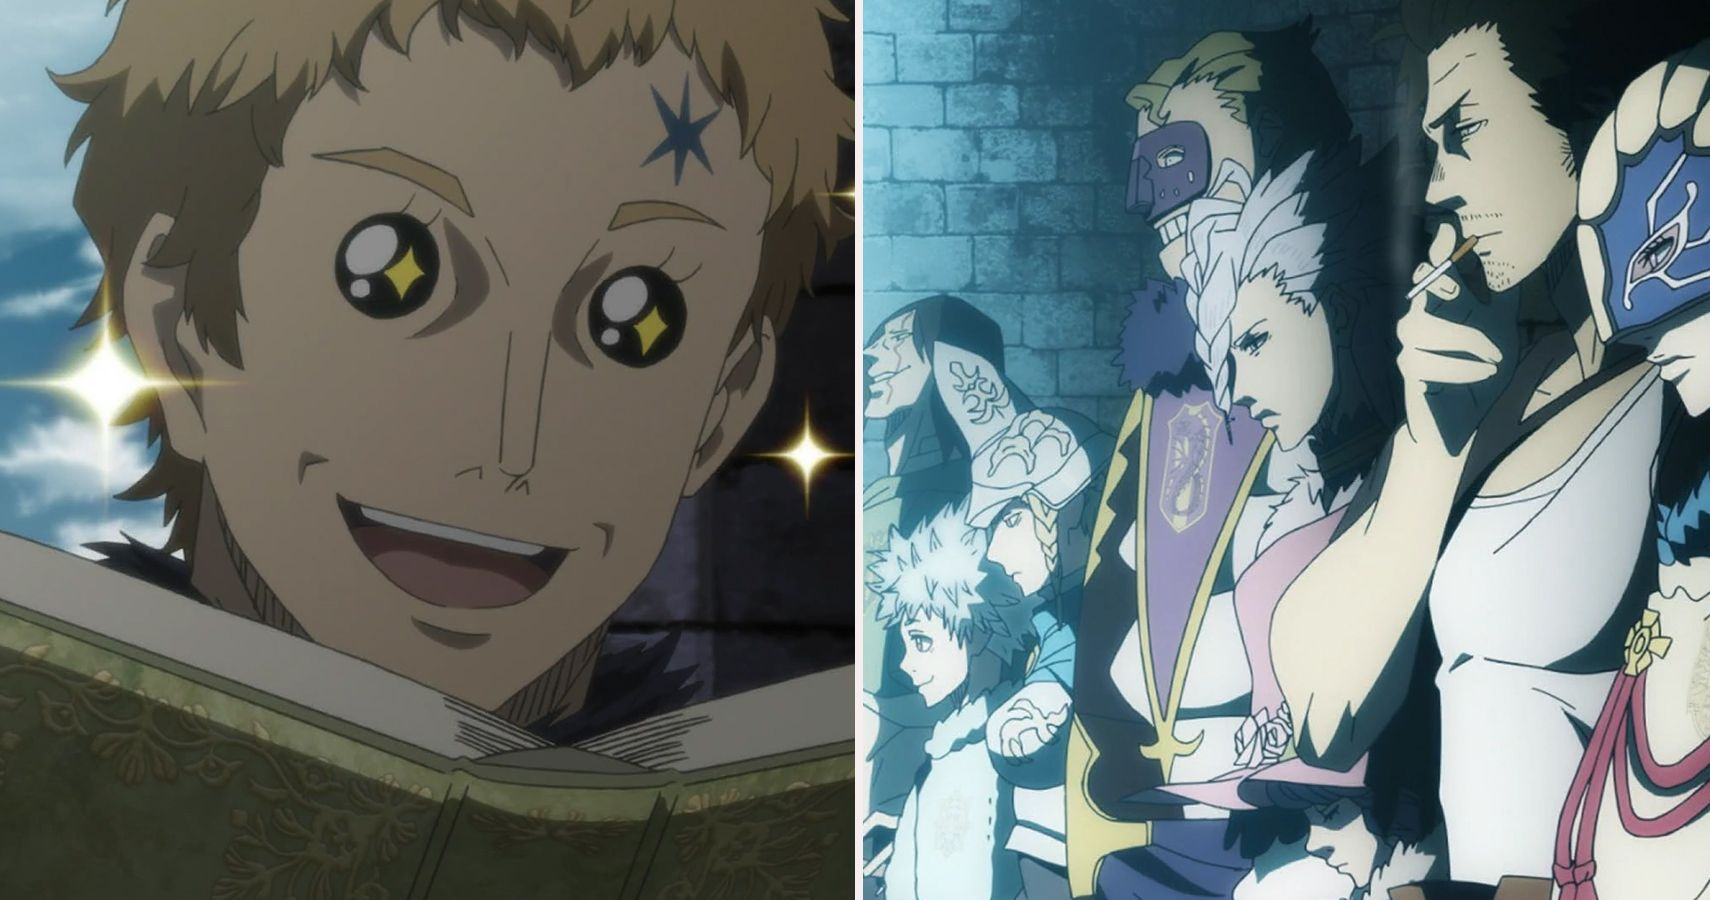 Black Clover Magic Knight Captains Ranked Cbr Julius novachrono is the current wizard king and was the former strongest magic knight in the clover kingdom. black clover magic knight captains